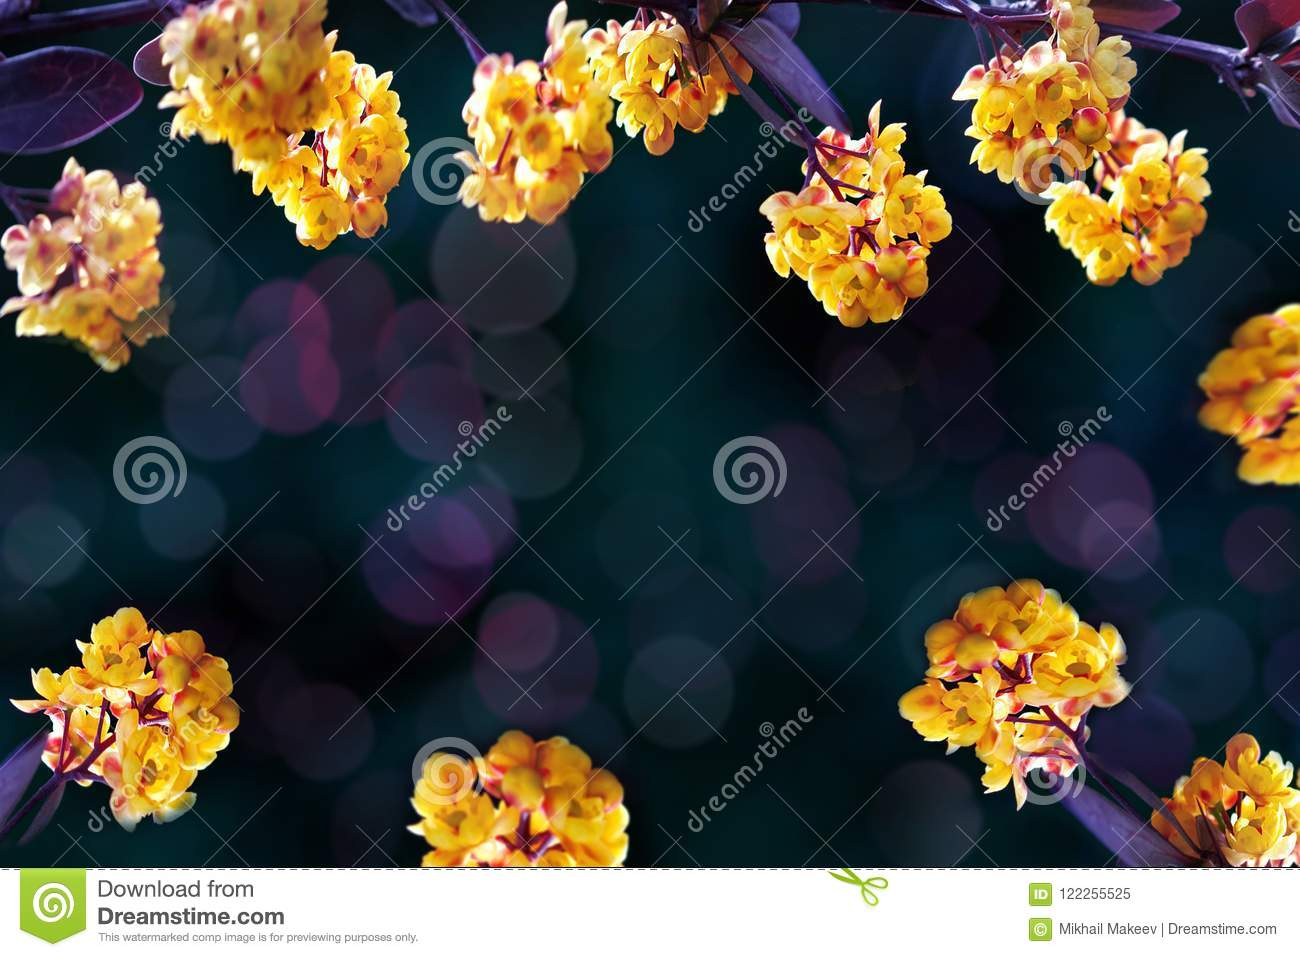 Floral summer background. Beautiful inflorescences of yellow flowers on a purple and dark green background. Artistic summer image.